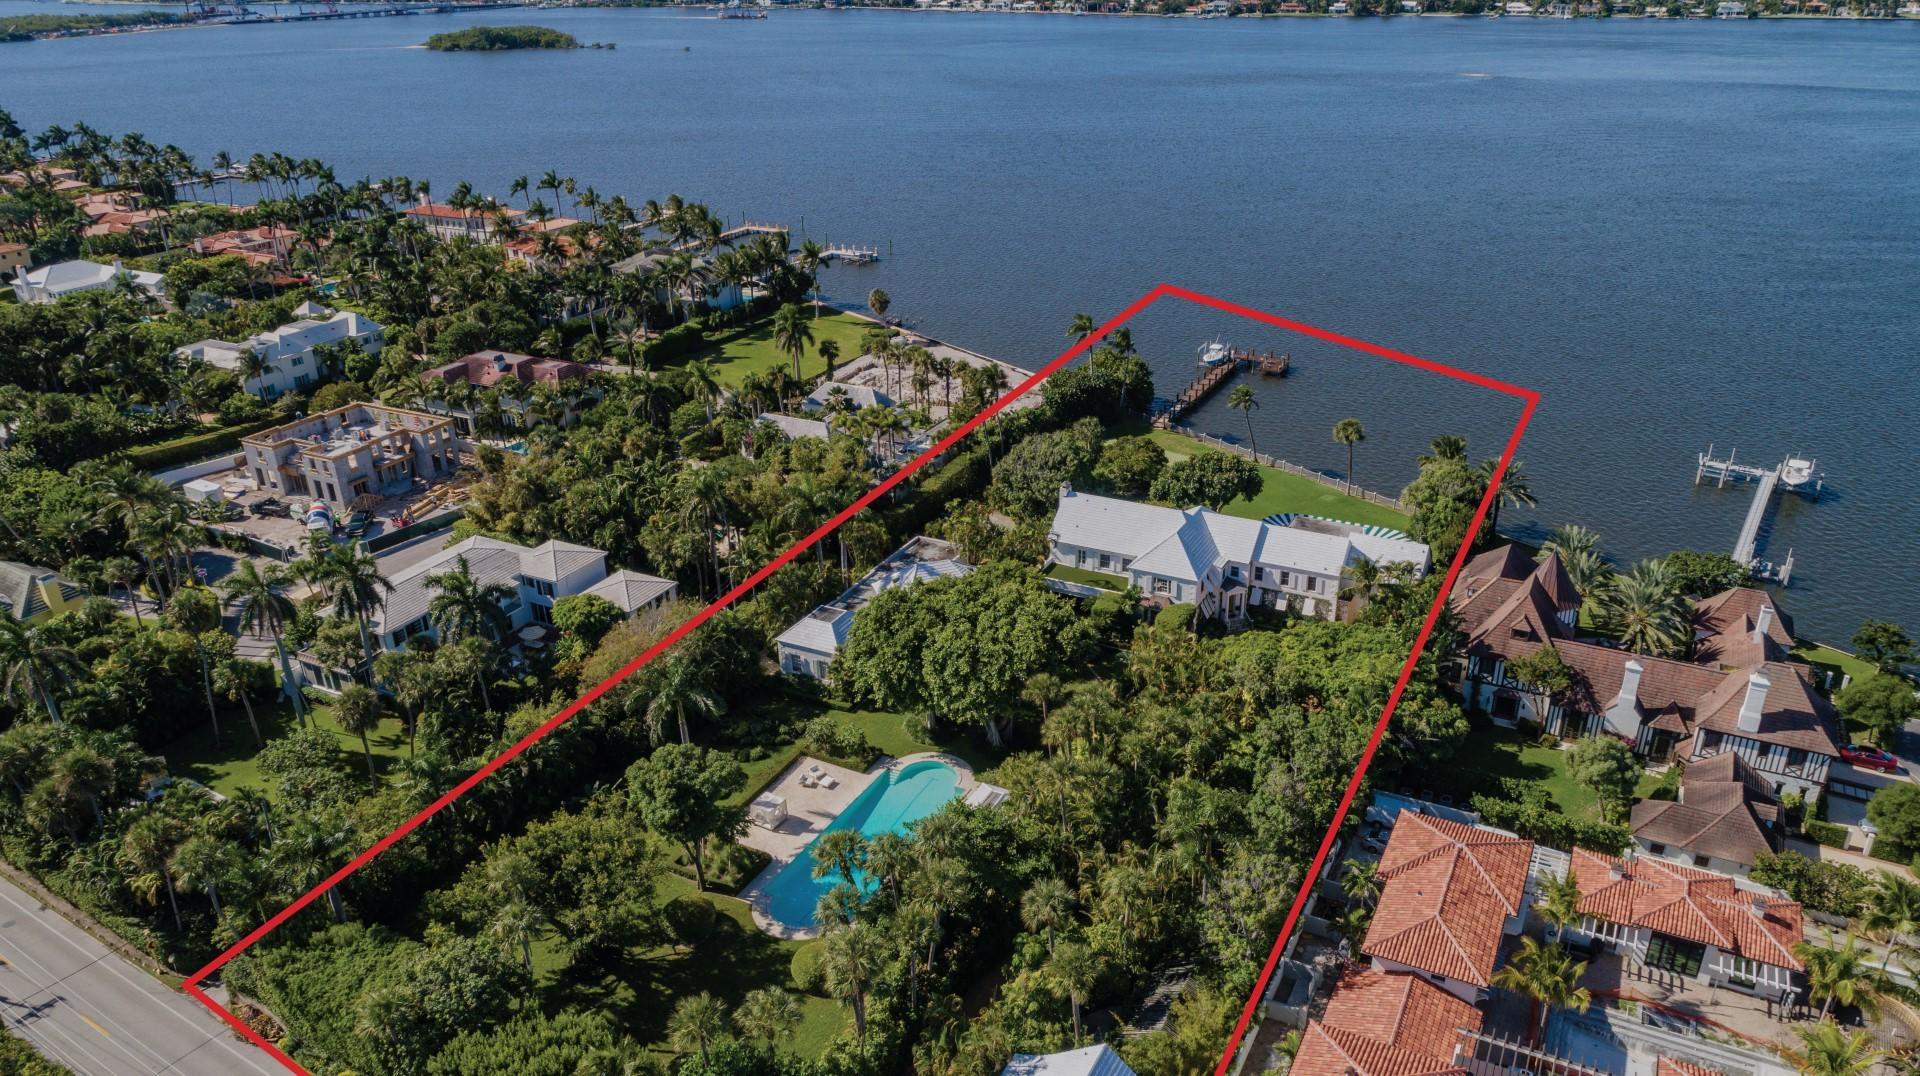 Palm Beach, Florida 33480, 6 Bedrooms Bedrooms, ,8 BathroomsBathrooms,Residential,For Sale,County,RX-10422702